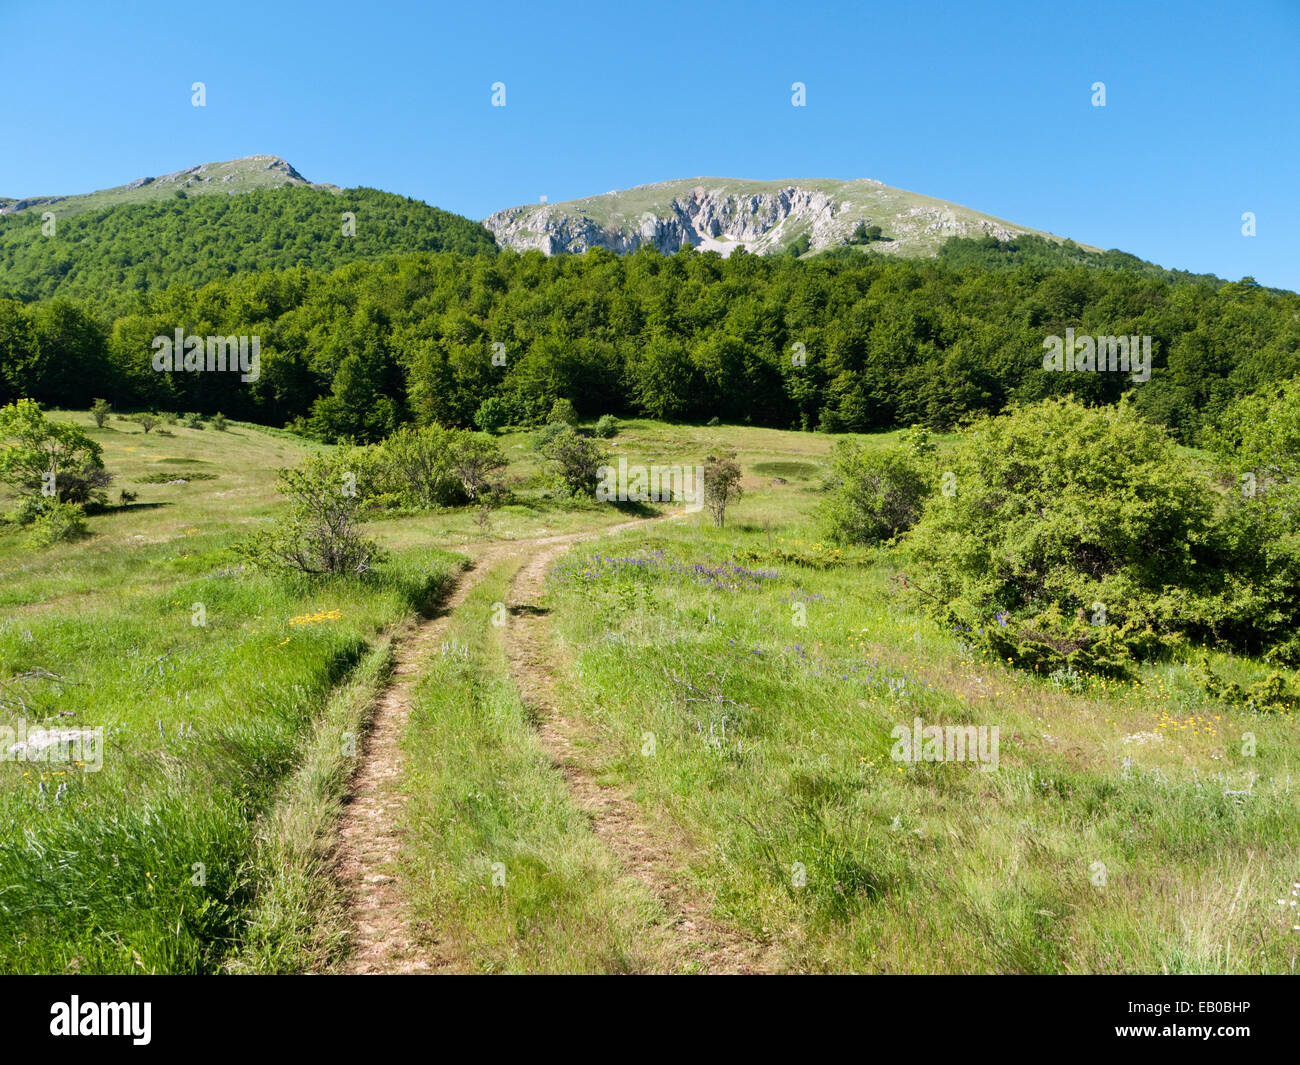 The mountain of Magaro, highest point of Galicica National Park, FYR Macedonia - Stock Image